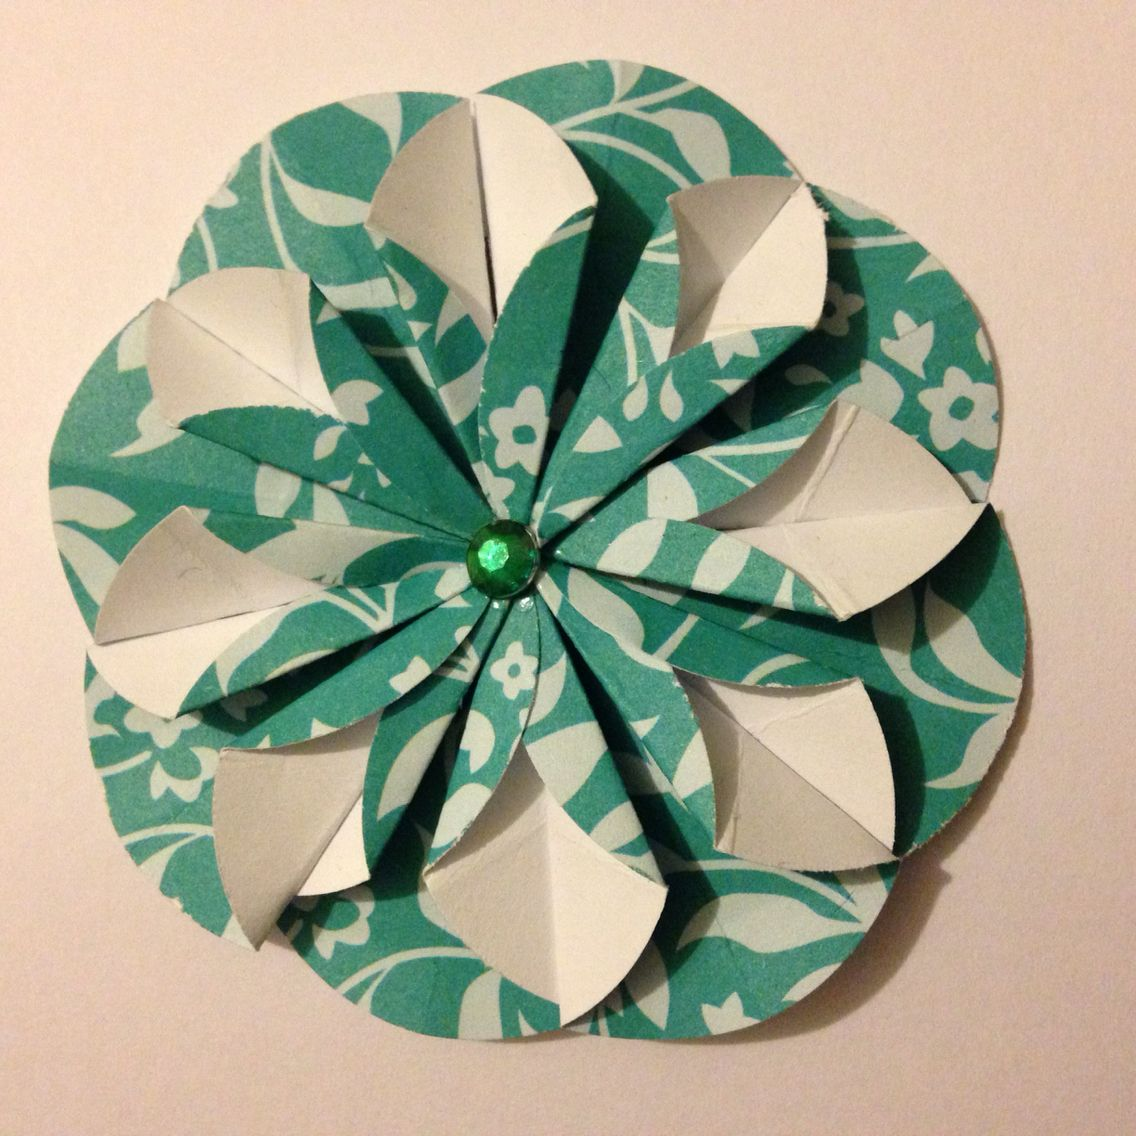 My Paper Flower To Be Used On My Handmade Cards Items I Have Made